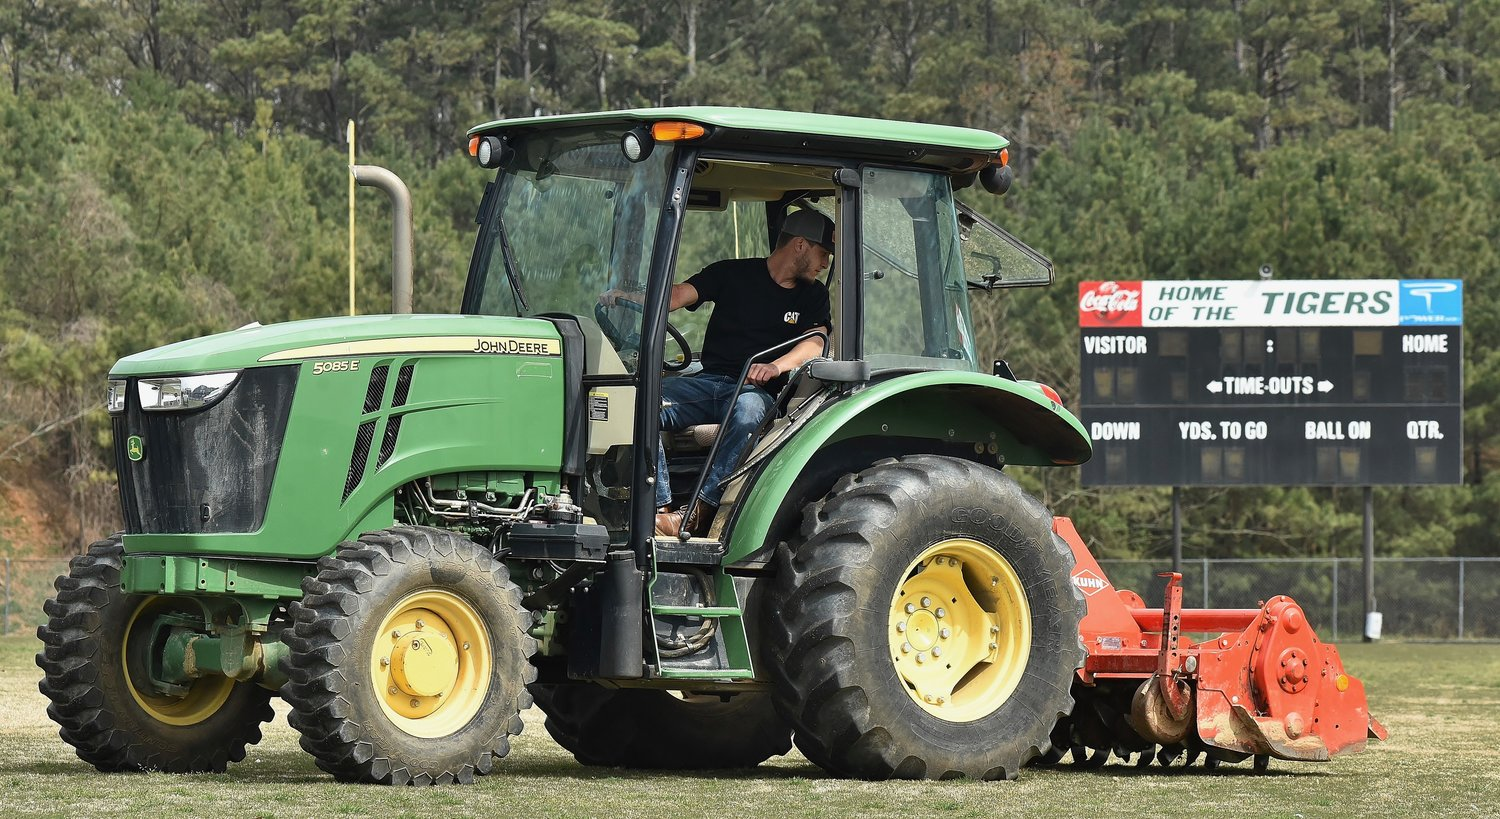 Adairsville turf replacement project begins | The Daily